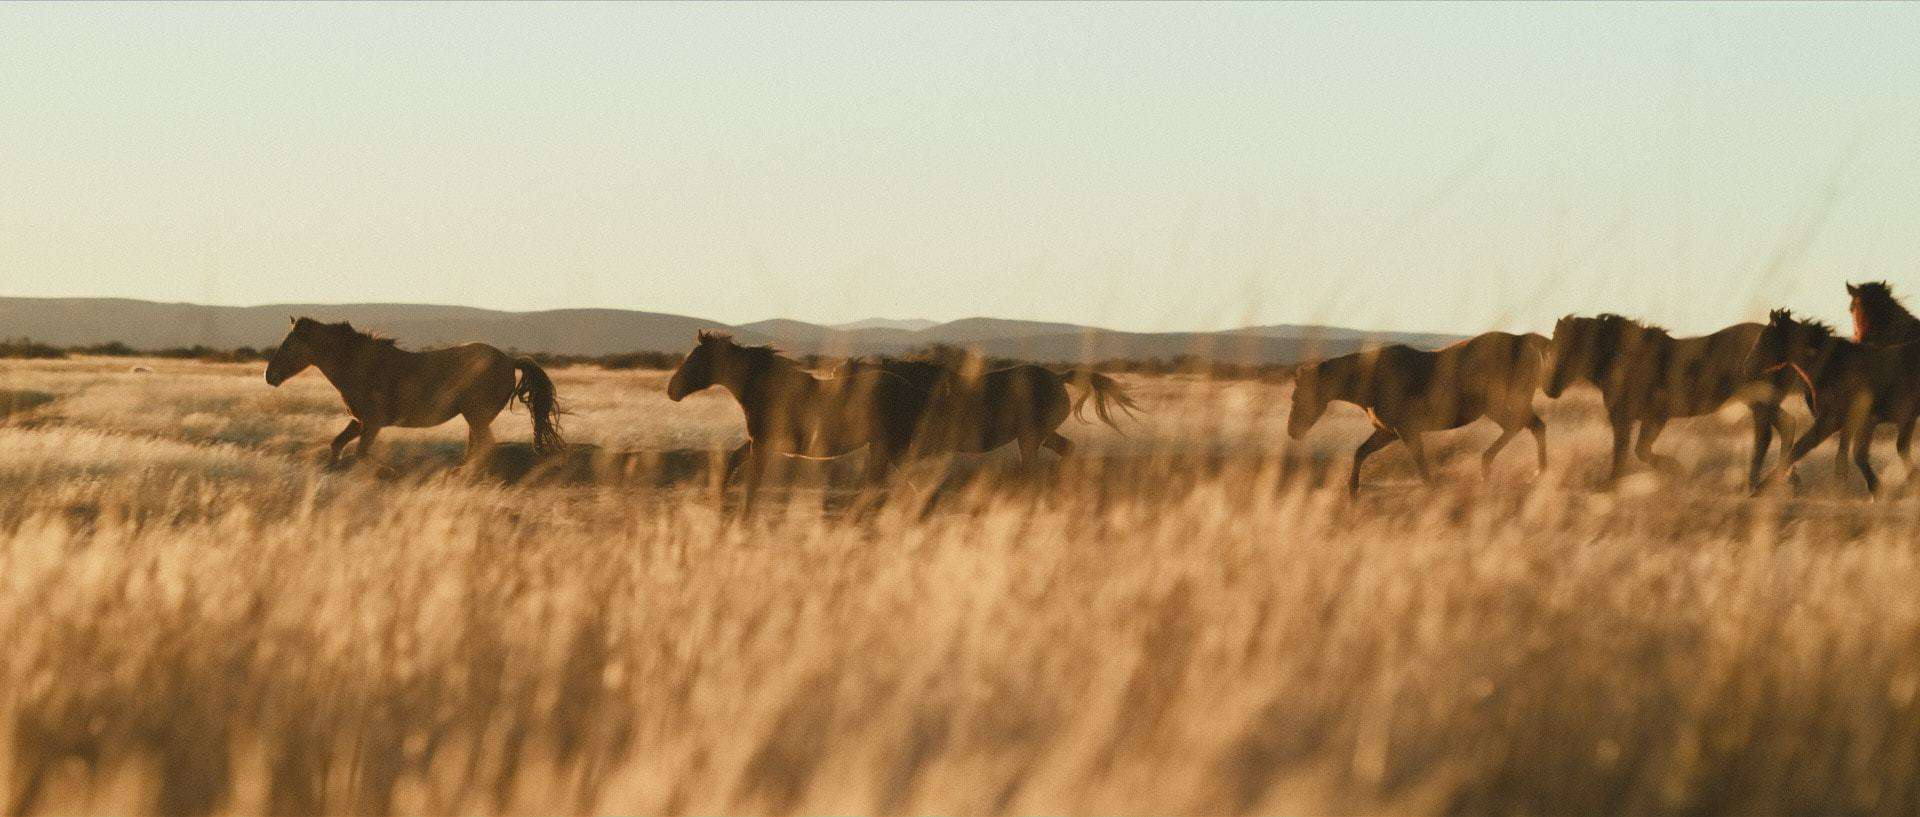 "Wild horses gallop in front of the camera under beautiful Patagonian light - Still frame from the documentary ""Land of The Wind"""